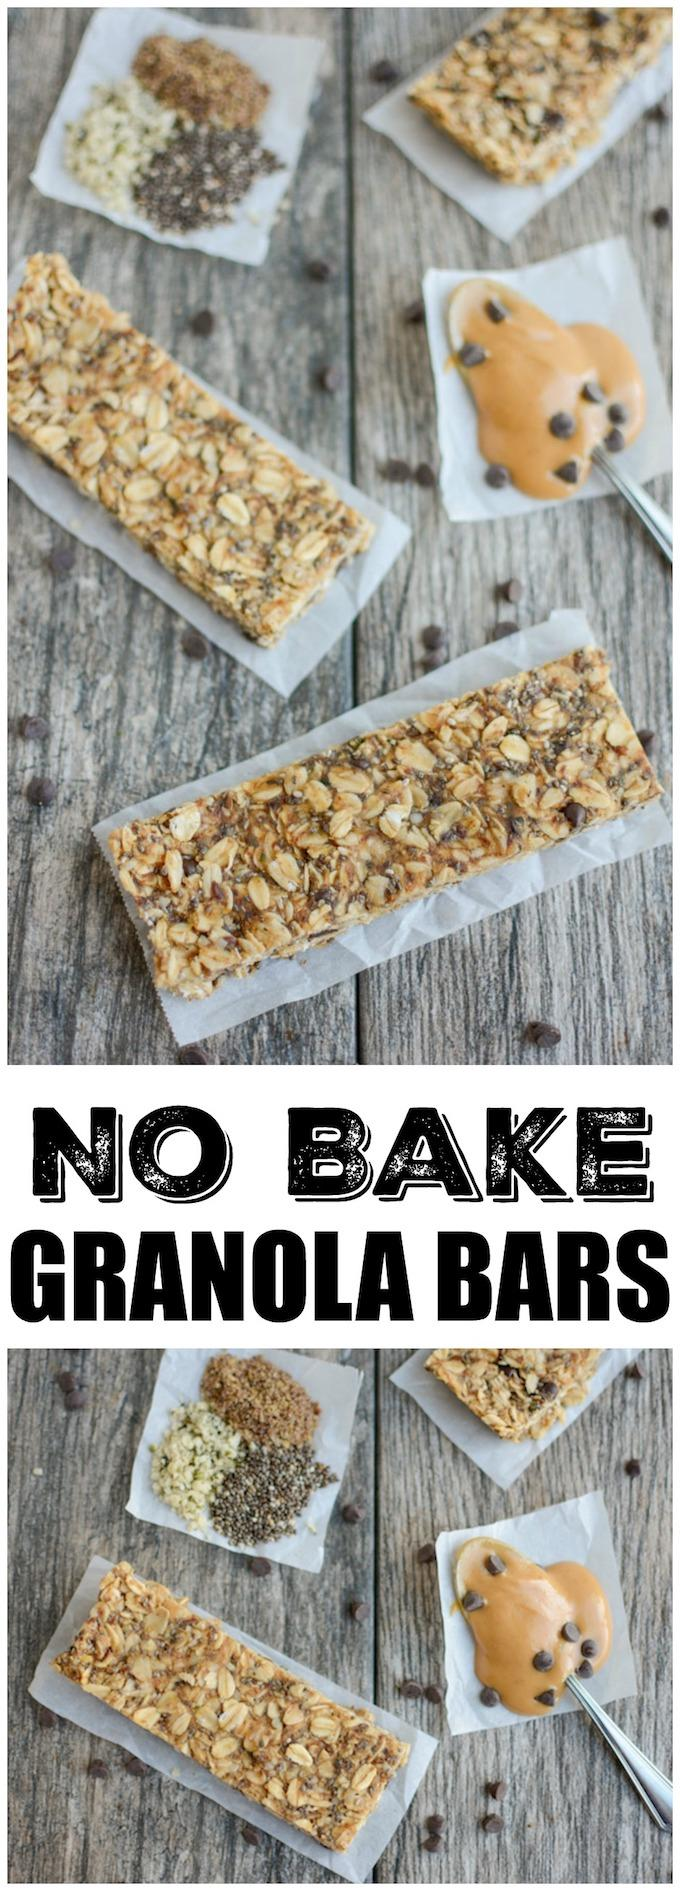 These No-Bake Granola Bars are lightly sweetened with honey and packed with chia, flax and hemp seeds. Full of fiber, protein, and healthy fats, they make a healthy, kid-friendly afternoon snack!